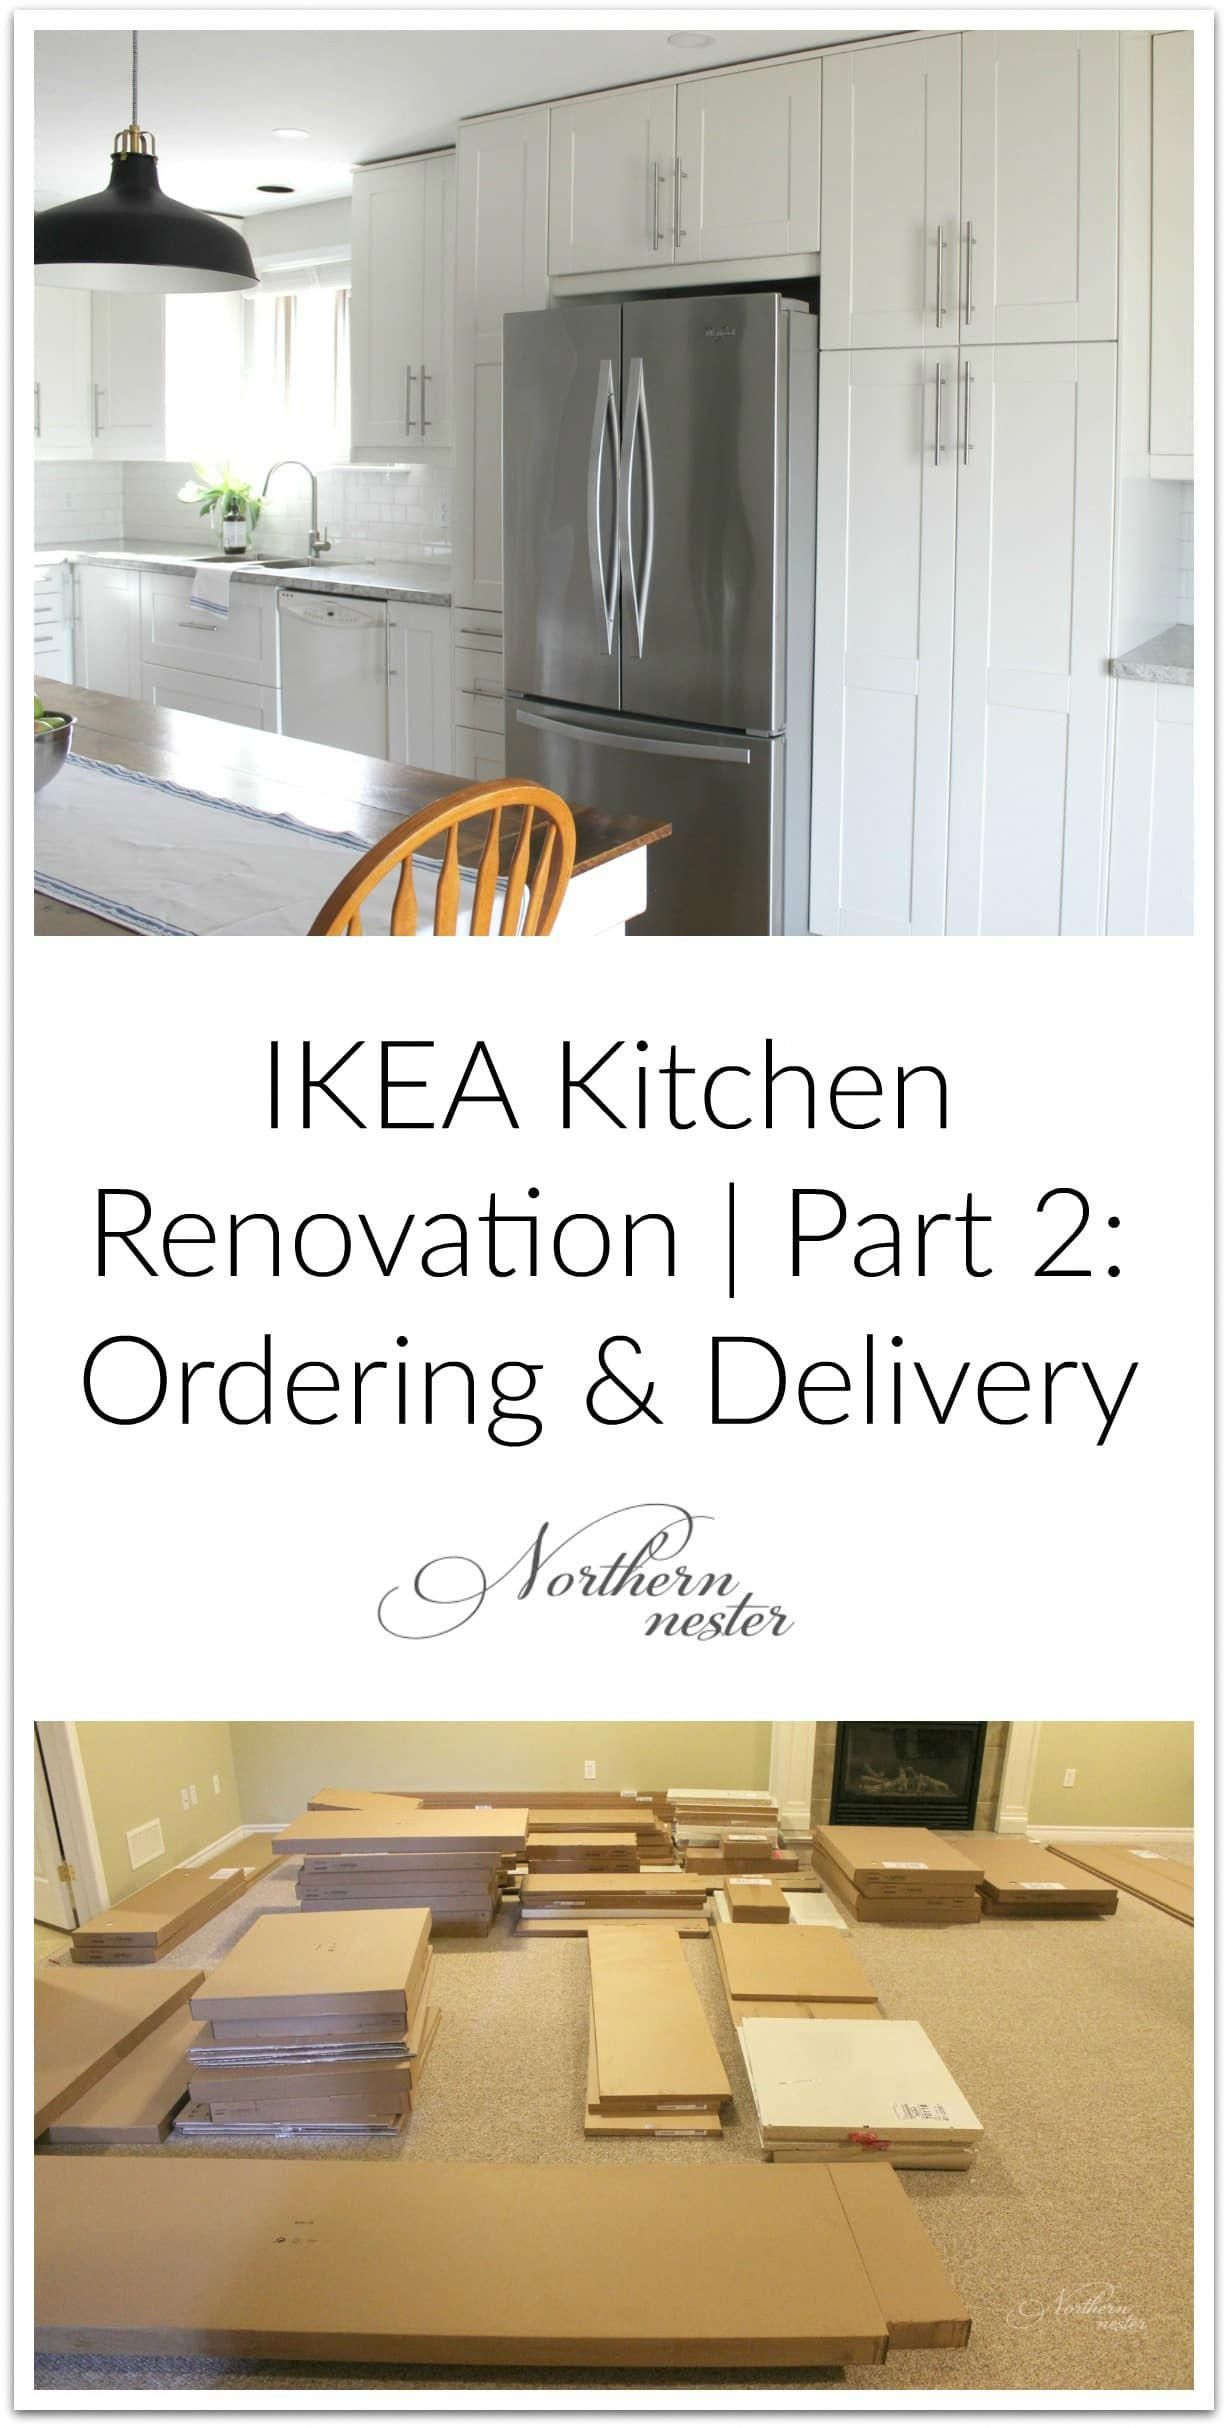 Take A Look At This Important Picture In Order To Browse Through The Offered Information On Renov Kitchen Remodeling Projects Ikea Kitchen Remodel Ikea Kitchen